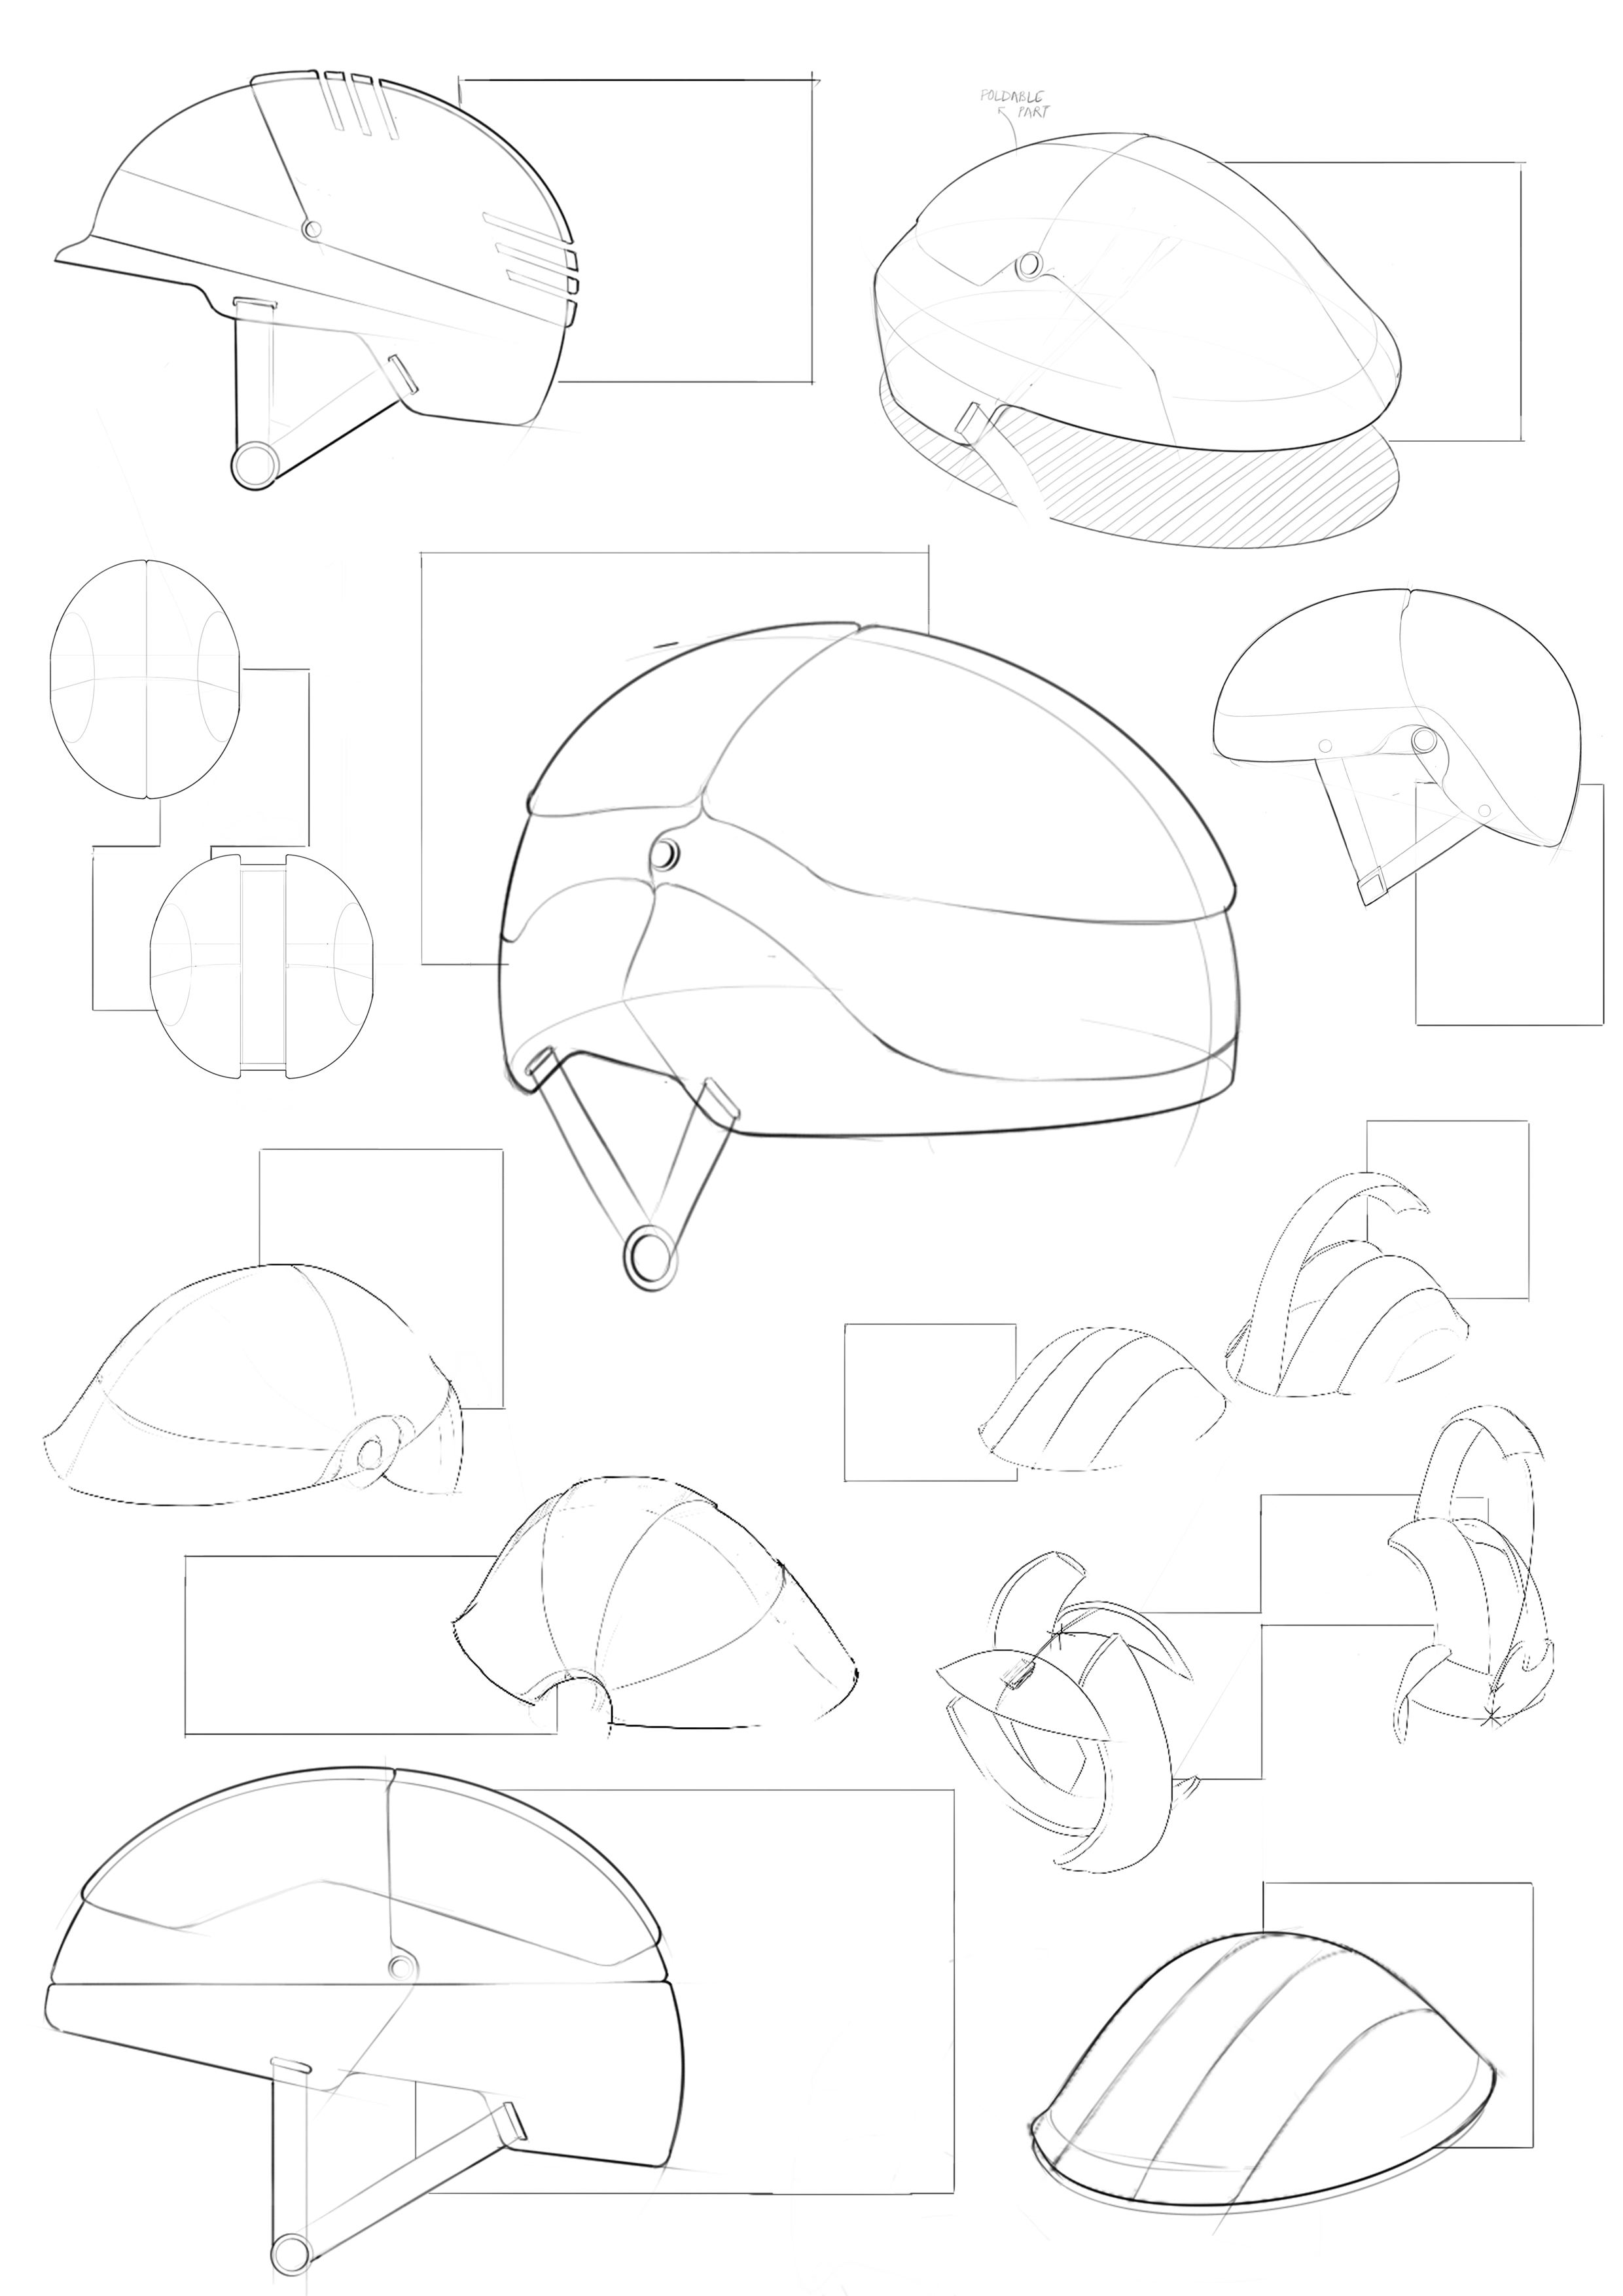 Sketches of a few initial concepts and forms.